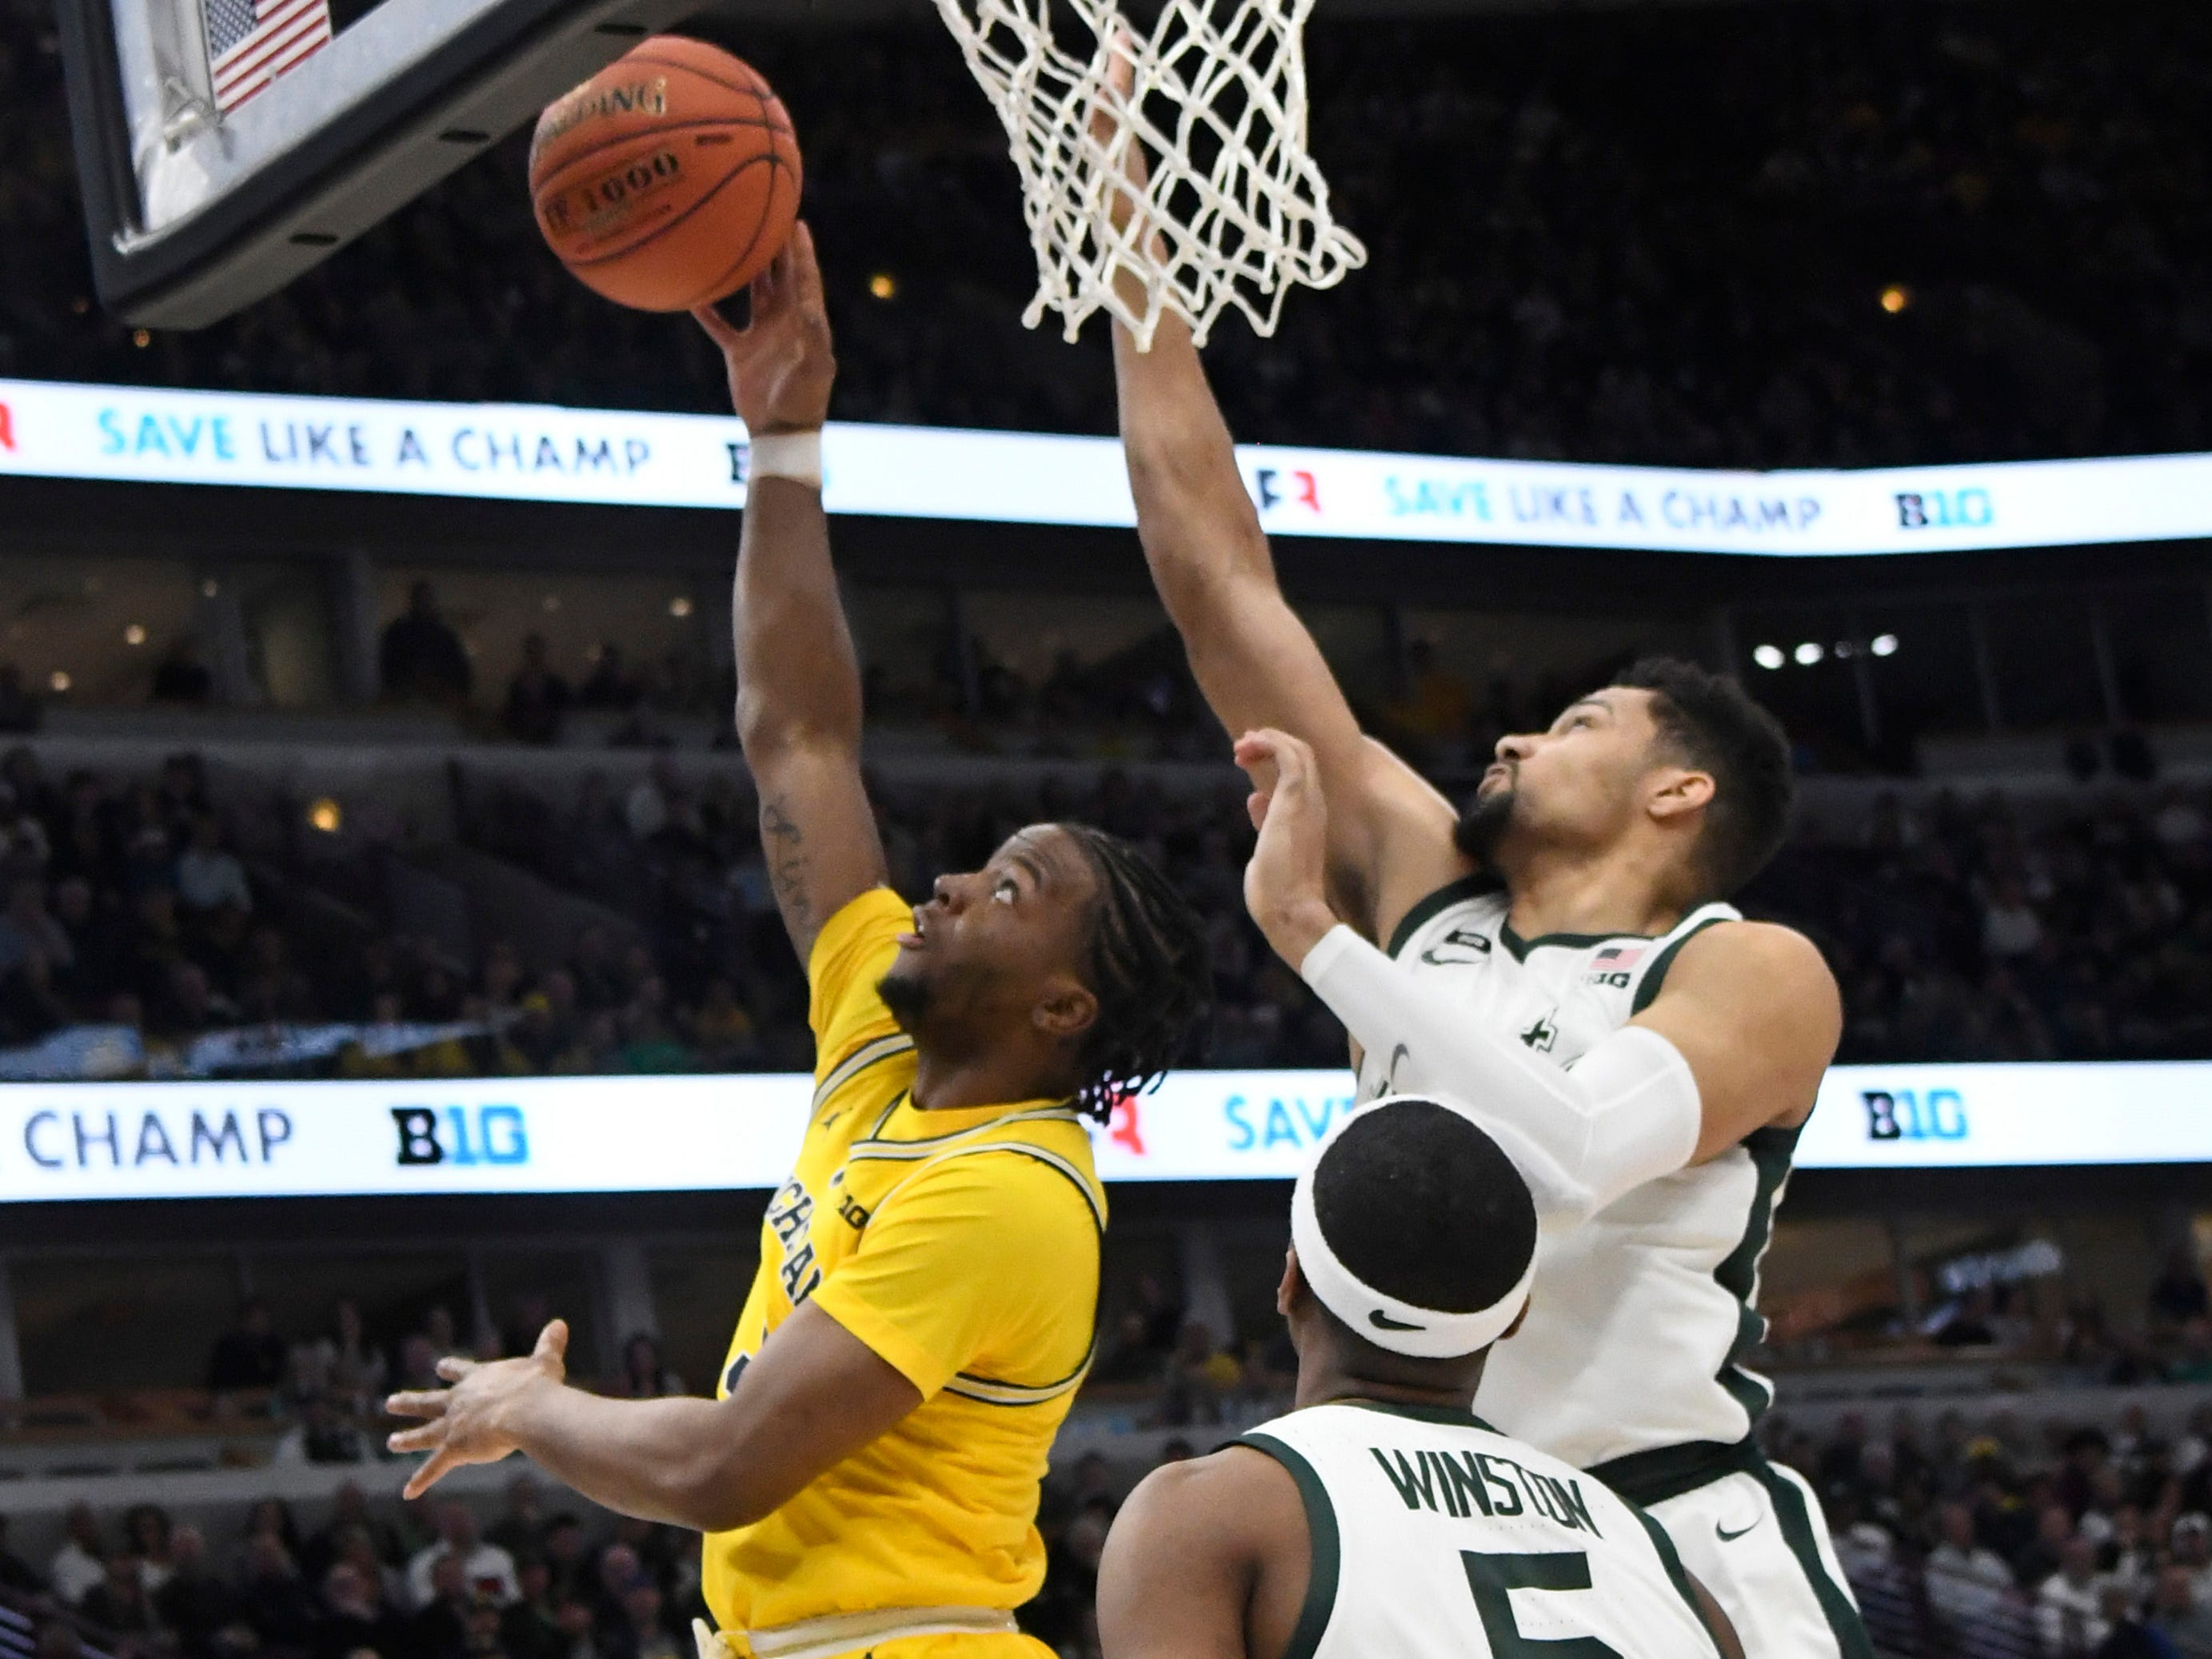 Michigan Wolverines guard Adrien Nunez (5) is defended by Michigan State Spartans forward Kenny Goins (25) during the first half in the Big Ten conference tournament at United Center.